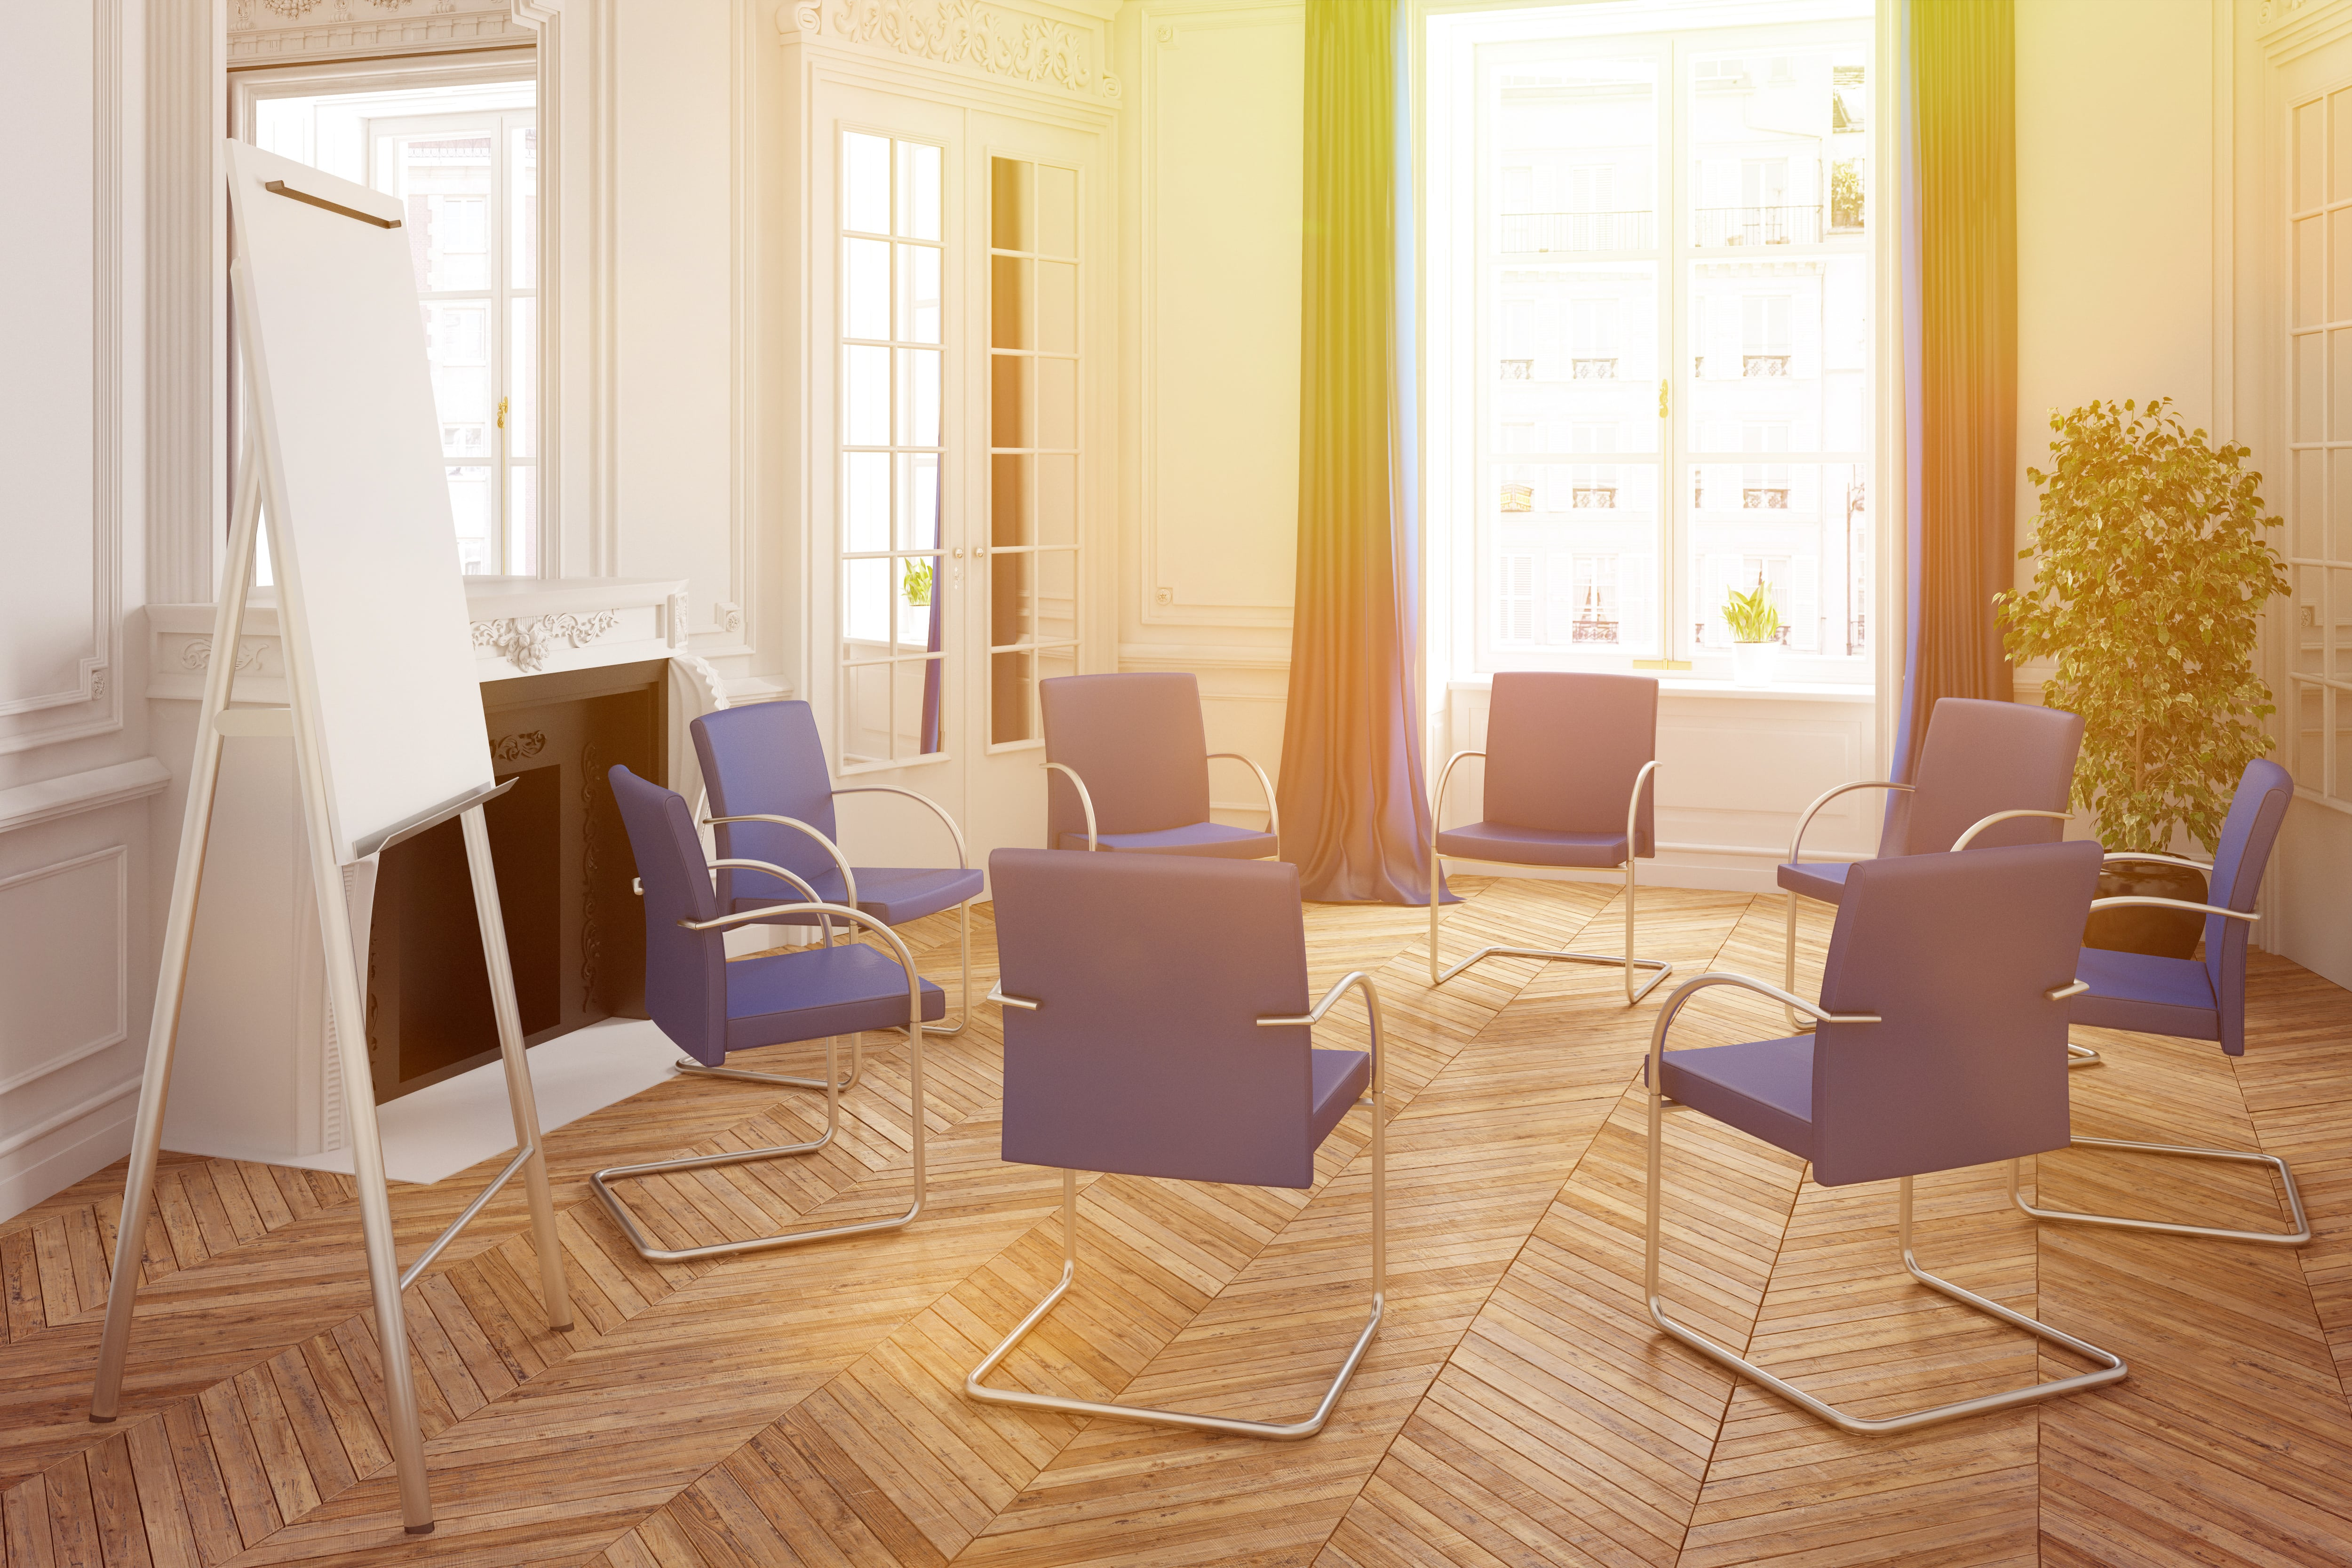 therapist-counselor-training-room-group-of-chairs